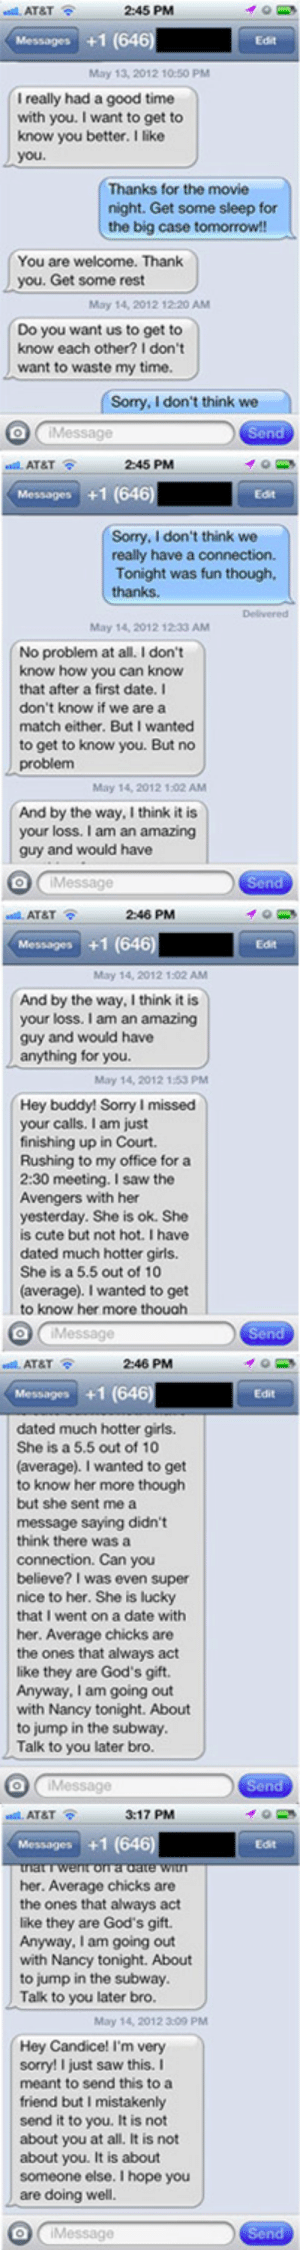 fatanimetitties:  pussysista:  Omg  Holy shiiiiiitttttr: al, AT&T  2:45 PM  Messages +1 (646  Edt  May 13, 2012 10:50 PM  I really had a good time  with you. I want to get to  know you better. I like  you  Thanks for the movie  night. Get some sleep for  the big case tomorrow!  You are welcome. Thank  you. Get some rest  May 14, 2012 12 20 AM  Do you want us to get to  know each other? I don't  want to waste my time.  Sorry, I don't think we   AT&TS  2:45 PM  Messages +1 (646)  Edit  Sorry, I don't think we  really have a connection.  Tonight was fun though,  thanks.  May 14, 2012 1233 AM  No problem at all. I don't  know how you can know  that after a first date. I  don't know if we are a  match either. But I wanted  to get to know you. But no  problem  May 14, 2012 1.02 AM  And by the way, I think it is  your loss. I am an amazing  guy and would have   AT&TS  246 PM  Messages +1 (646)  Edit  May 14, 2012 1:02 AM  And by the way, I think it is  your loss. I am an amazing  guy and would have  anything for you.  May 14, 2012 153 PM  Hey buddy! Sorry I missed  your calls. I am just  finishing up in Court.  Rushing to my office for a  2:30 meeting. I saw the  Avengers with her  yesterday. She is ok. She  is cute but not hot. I have  dated much hotter girls.  She is a 5.5 out of 10  (average). I wanted to get  to know her more thouah  Message   stal. AT&T  2:46 PM  Messages +1 (646)  Edit  dated much hotter girls.  She is a 5.5 out of 10  (average). I wanted to get  to know her more though  but she sent me a  message saying didn't  think there was a  connection. Can you  believe? I was even super  nice to her. She is lucky  that I went on a date with  her. Average chicks are  the ones that always act  like they are God's gift.  Anyway, I am going out  with Nancy tonight. About  to jump in the subway.  Talk to you later bro.   AT&T  3:17 PM  Edt  her. Average chicks are  the ones that always act  like they are God's gift.  Anyway, I am going out  with Nancy tonight. Abou